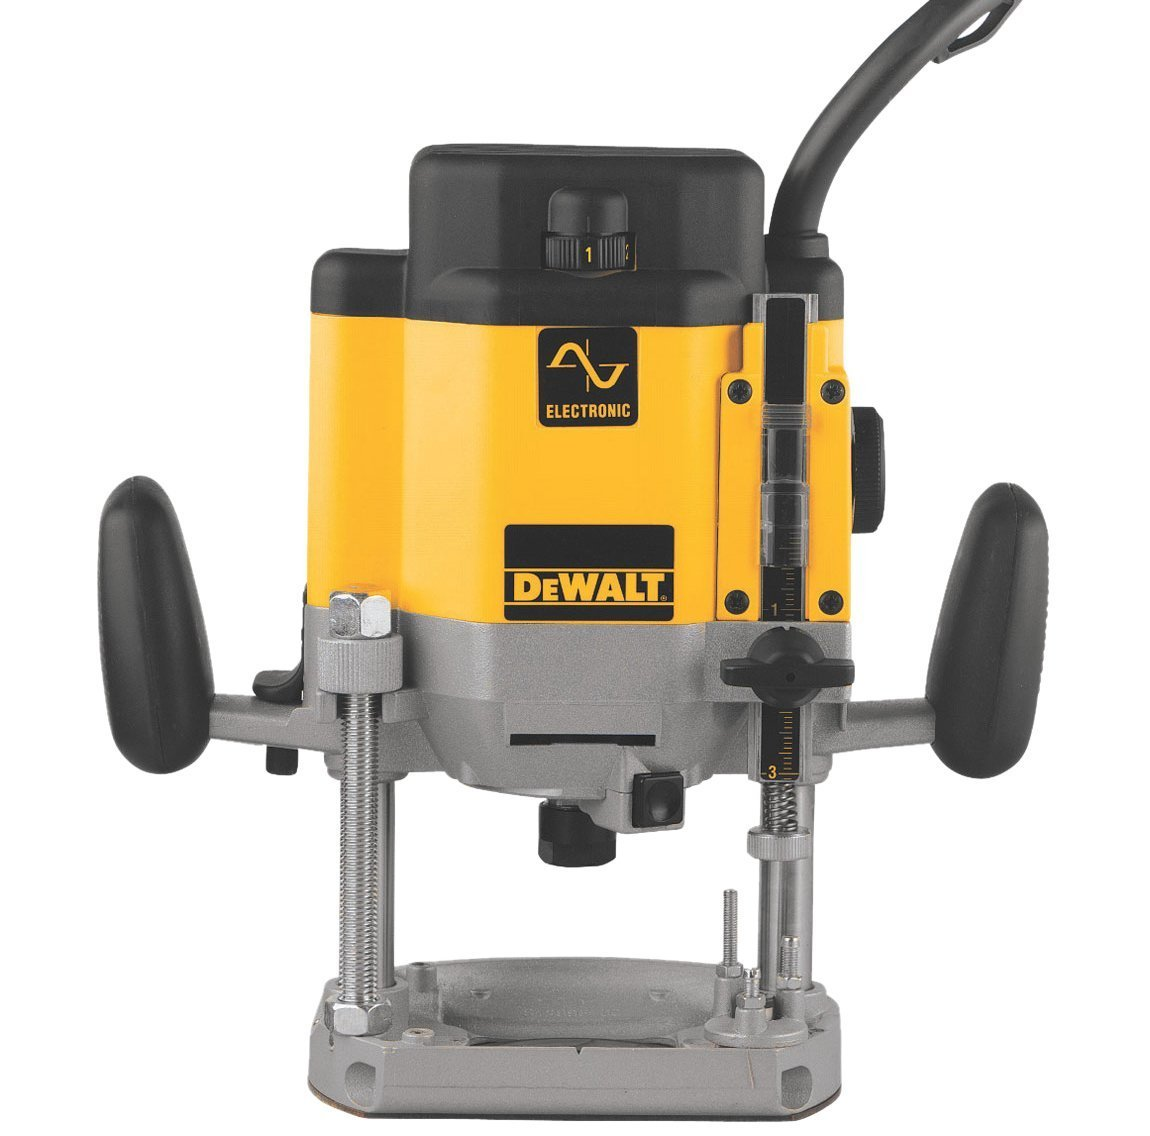 DeWalt Heavy Duty Plunge Router